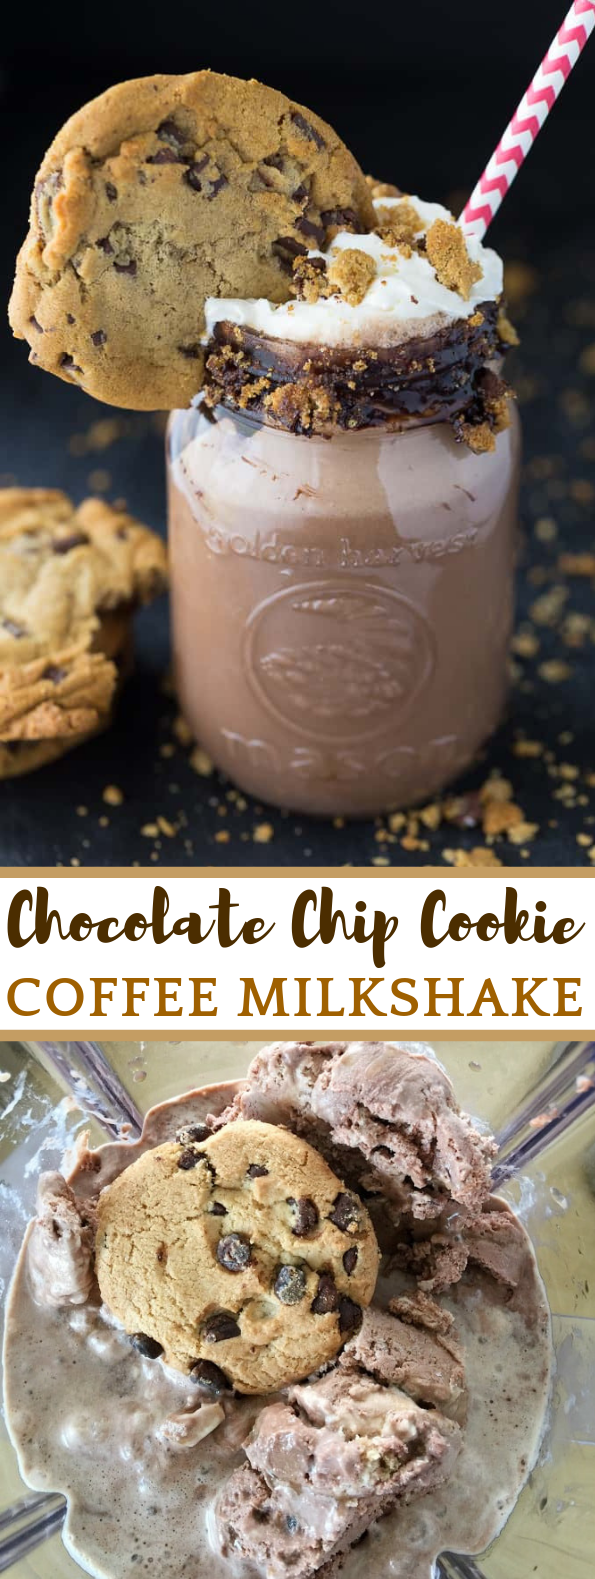 Chocolate Chip Cookie Coffee Milkshake #dessert #drink